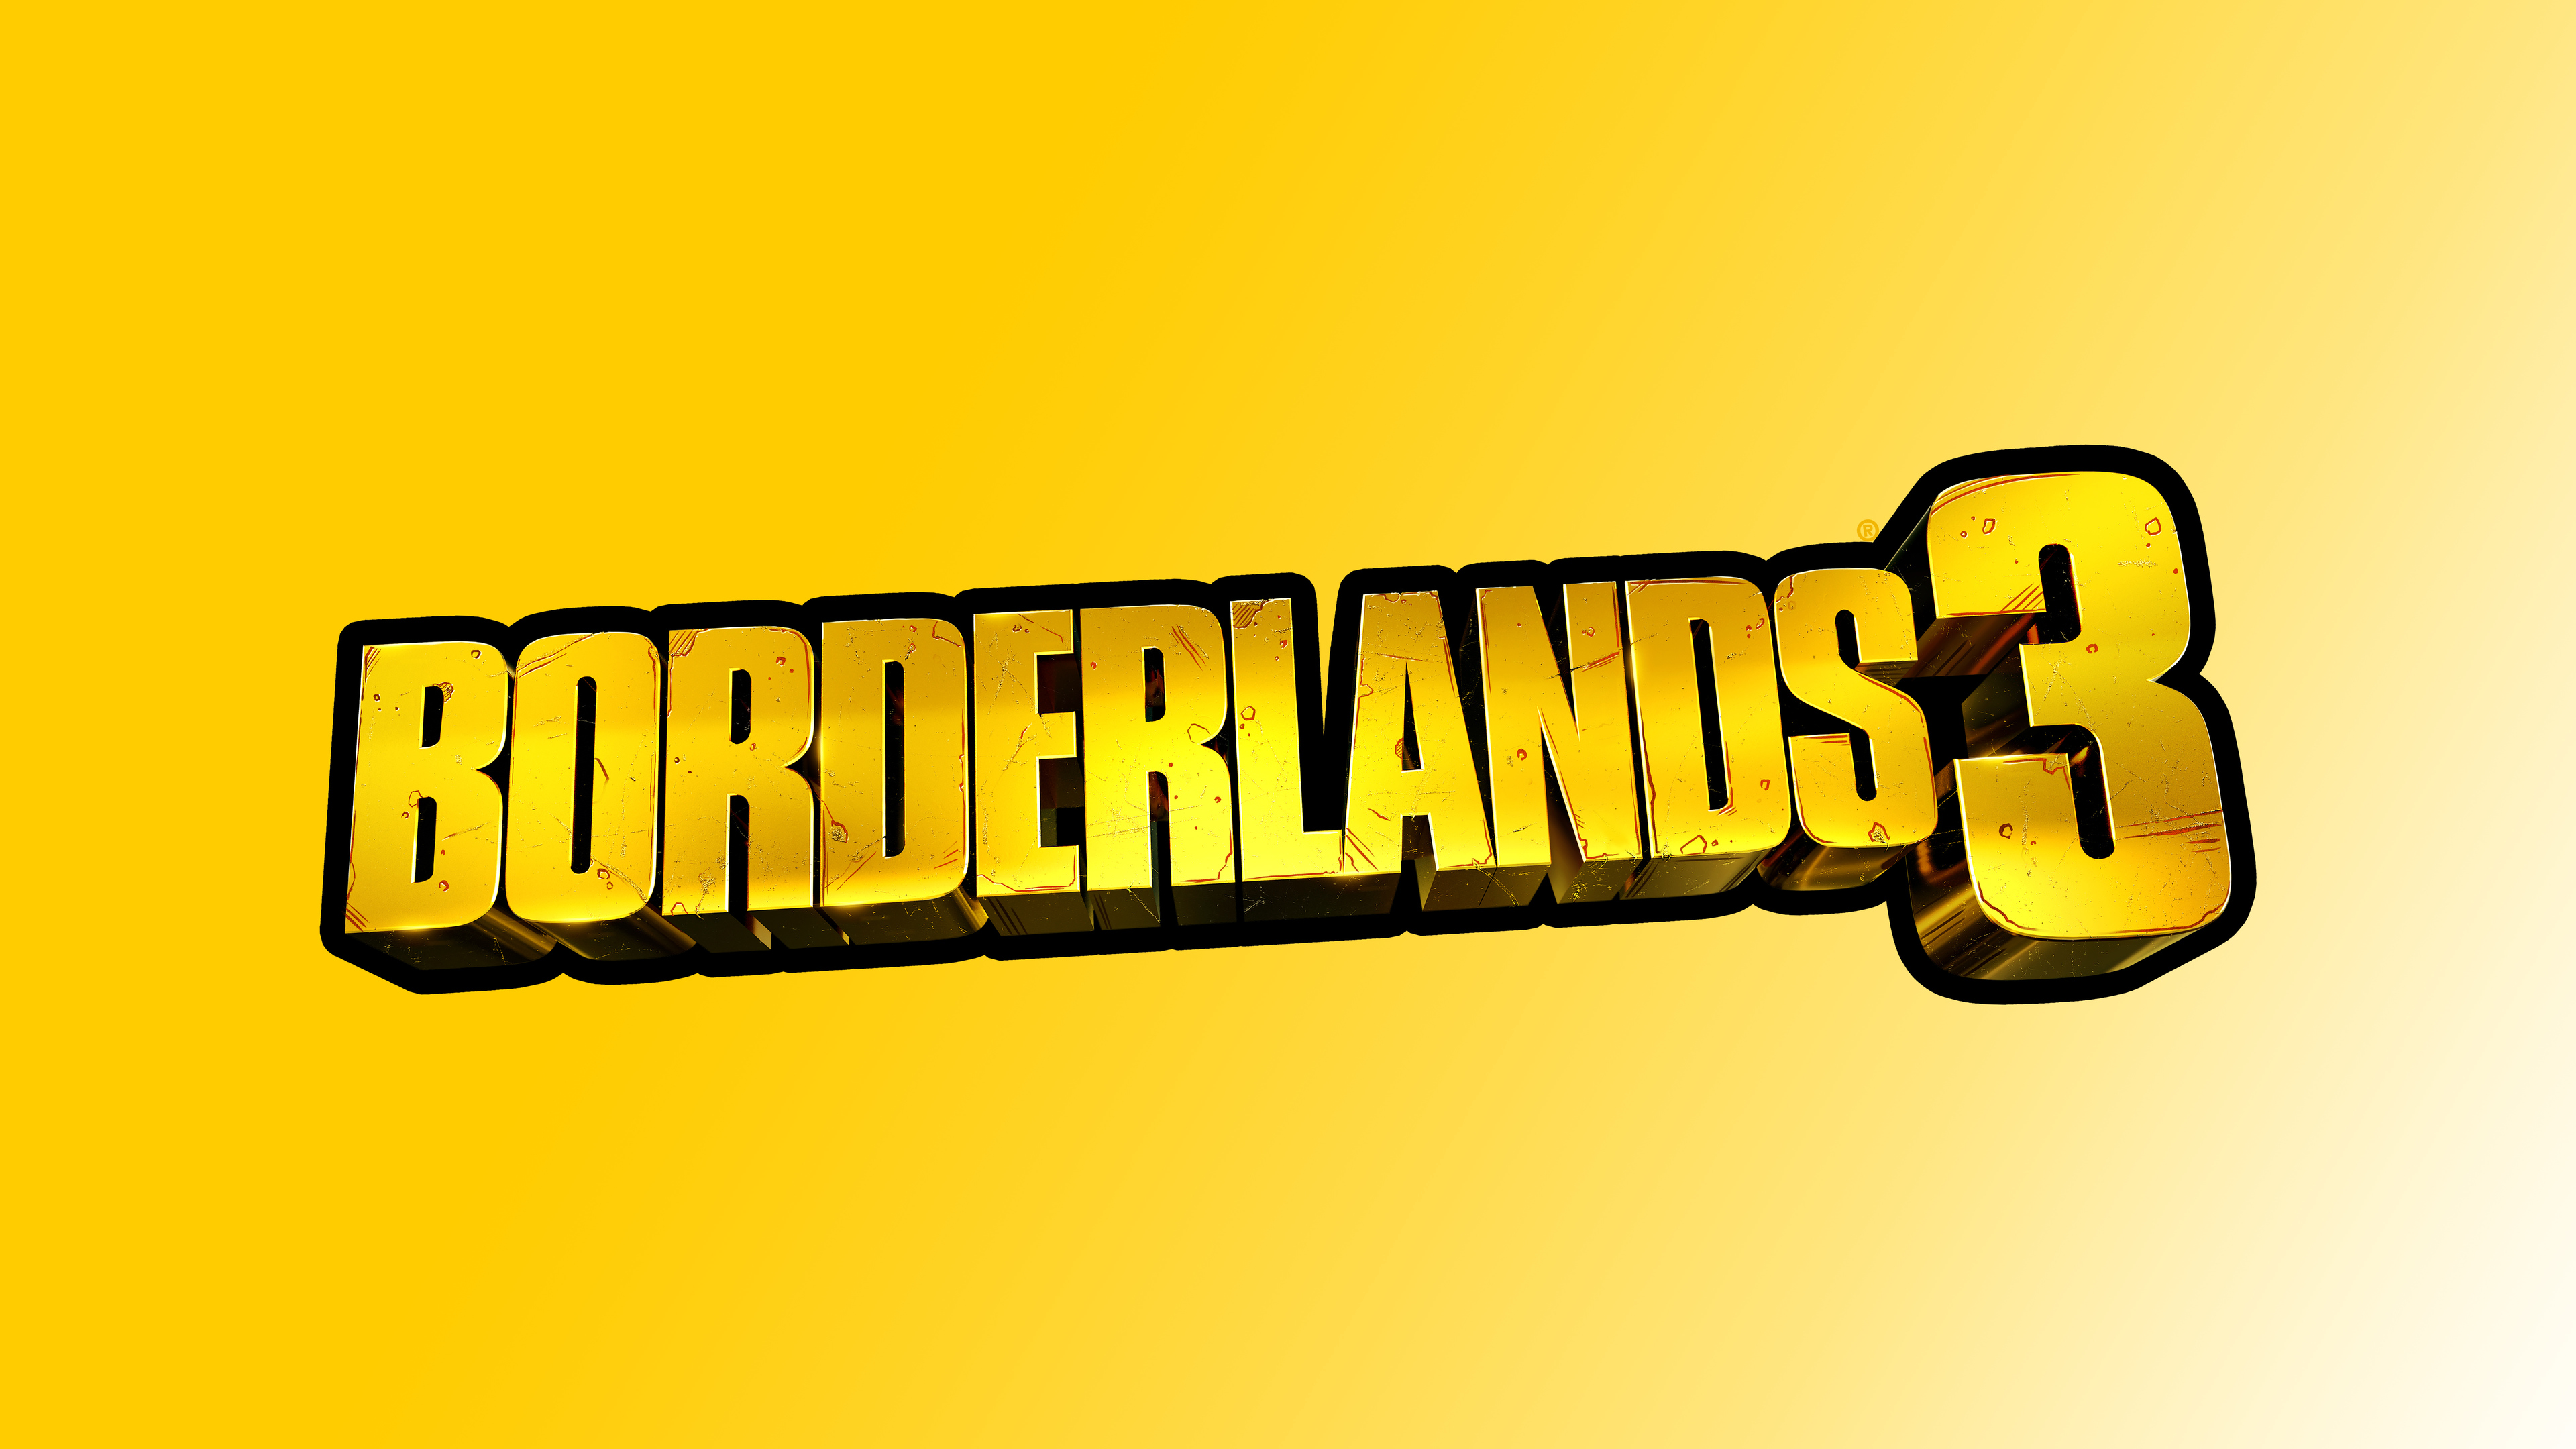 Wallpaper 4k Borderlands 3 Logo 4k 4k Wallpapers